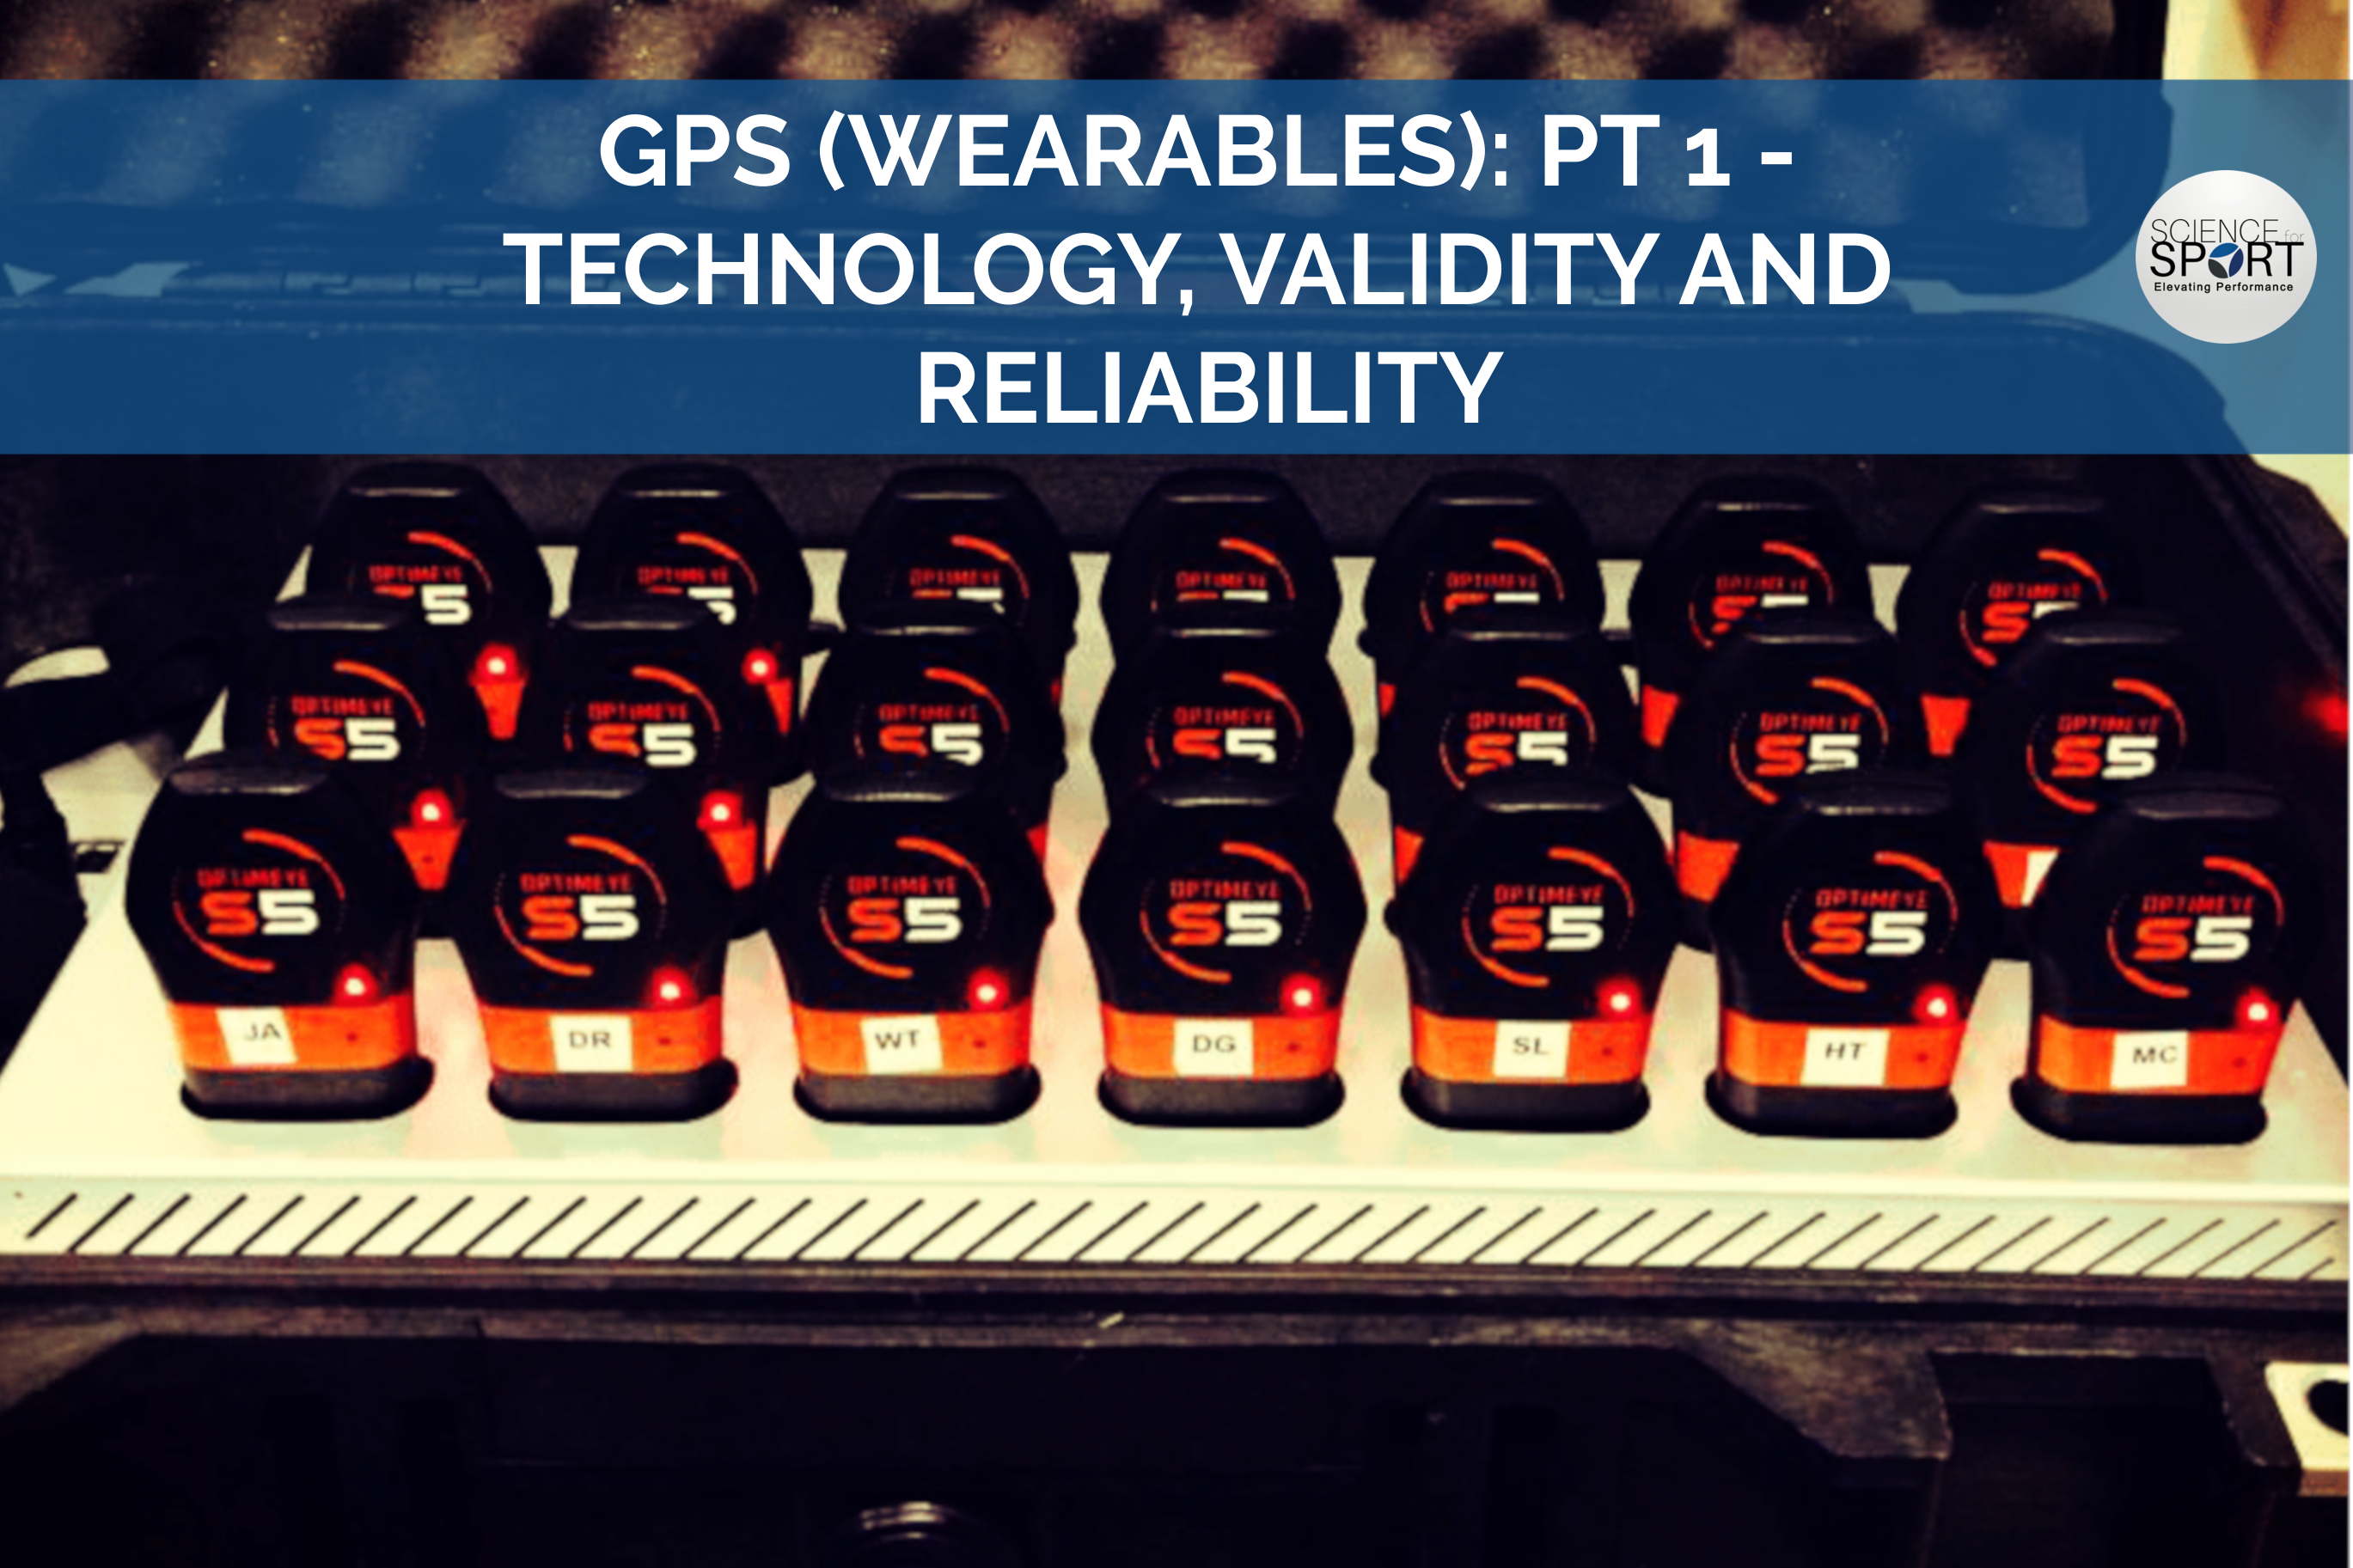 GPS (Wearables): Part 1 - Technology, Validity, and Reliability - Science for Sport